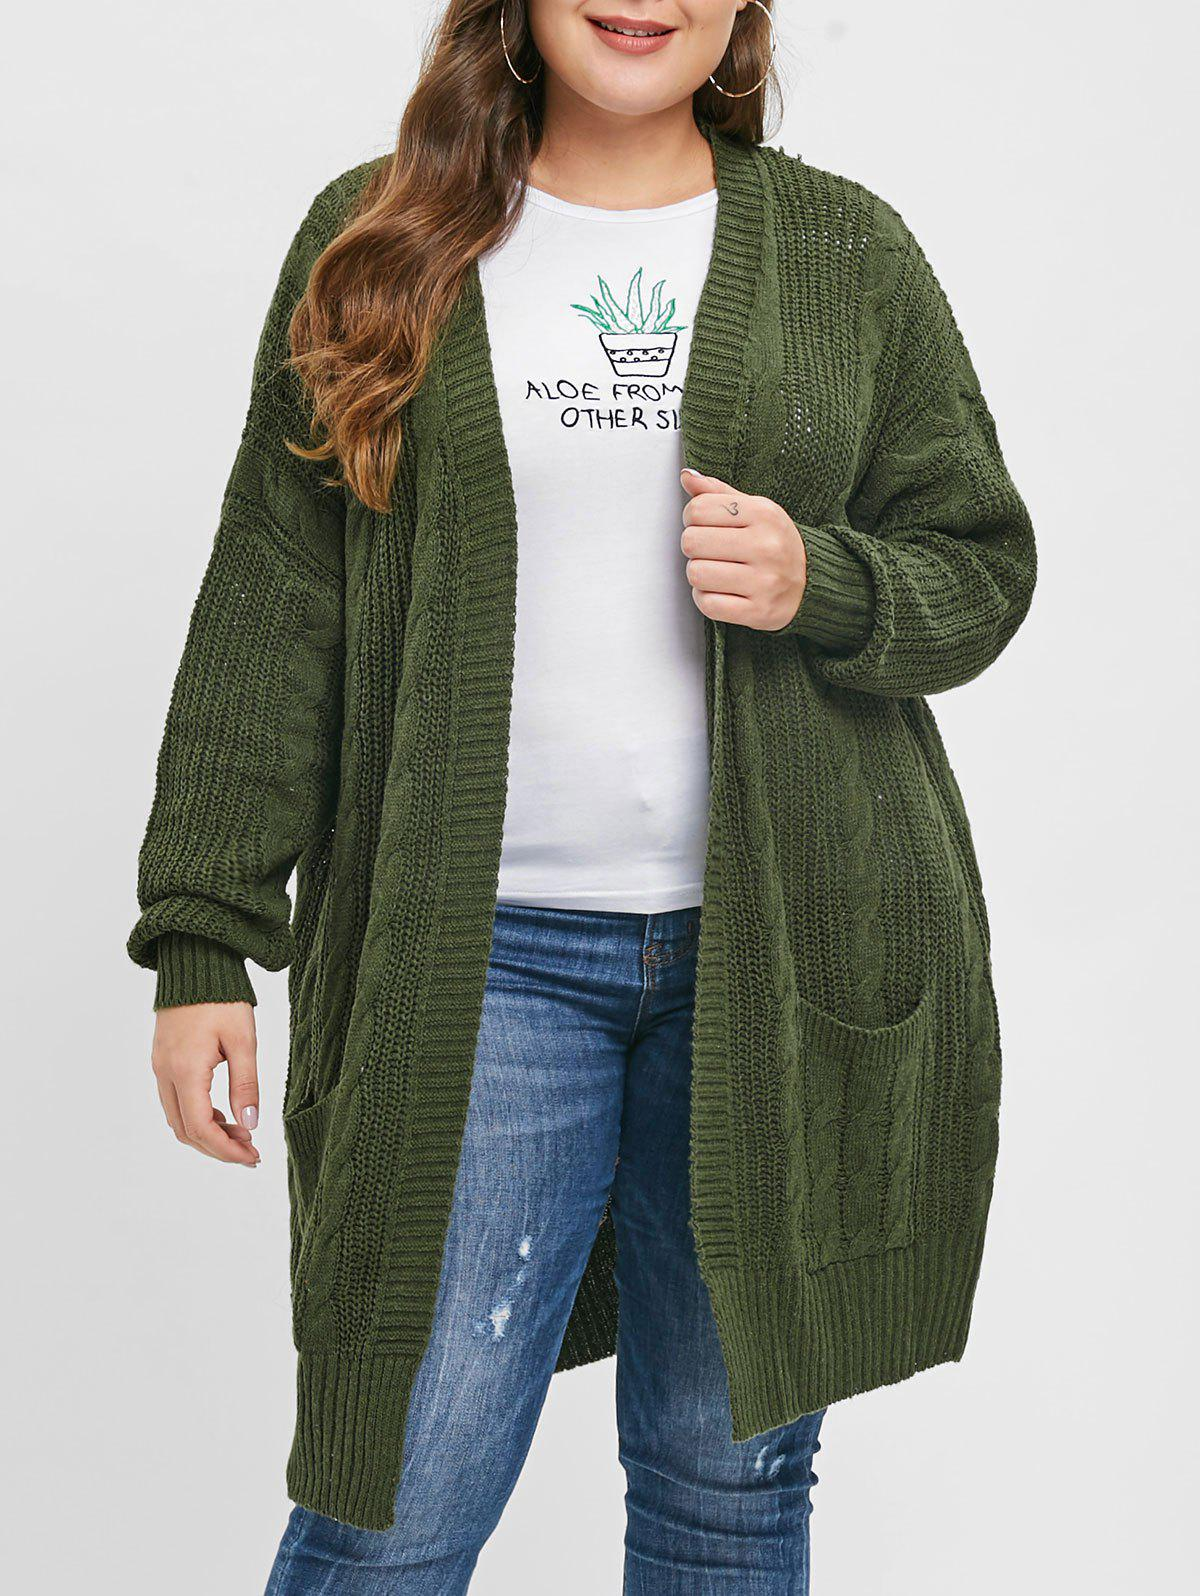 dd32f3c1ea877 Discount Cable Knit Plus Size Front Pocket Cardigan